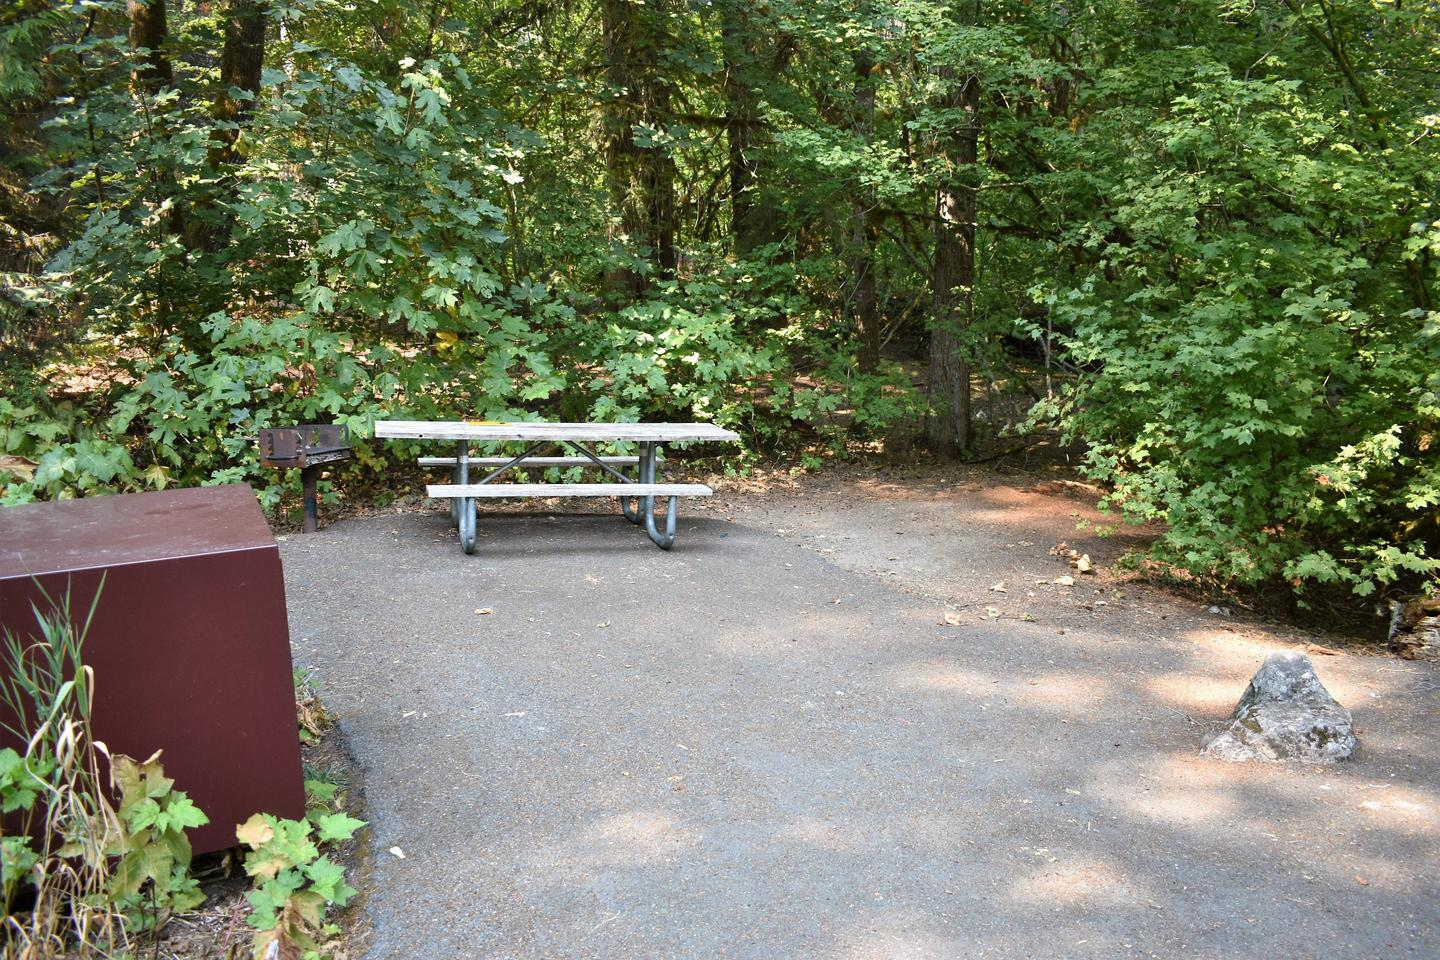 Food storage locker, grill, and picnic tableView of campsite